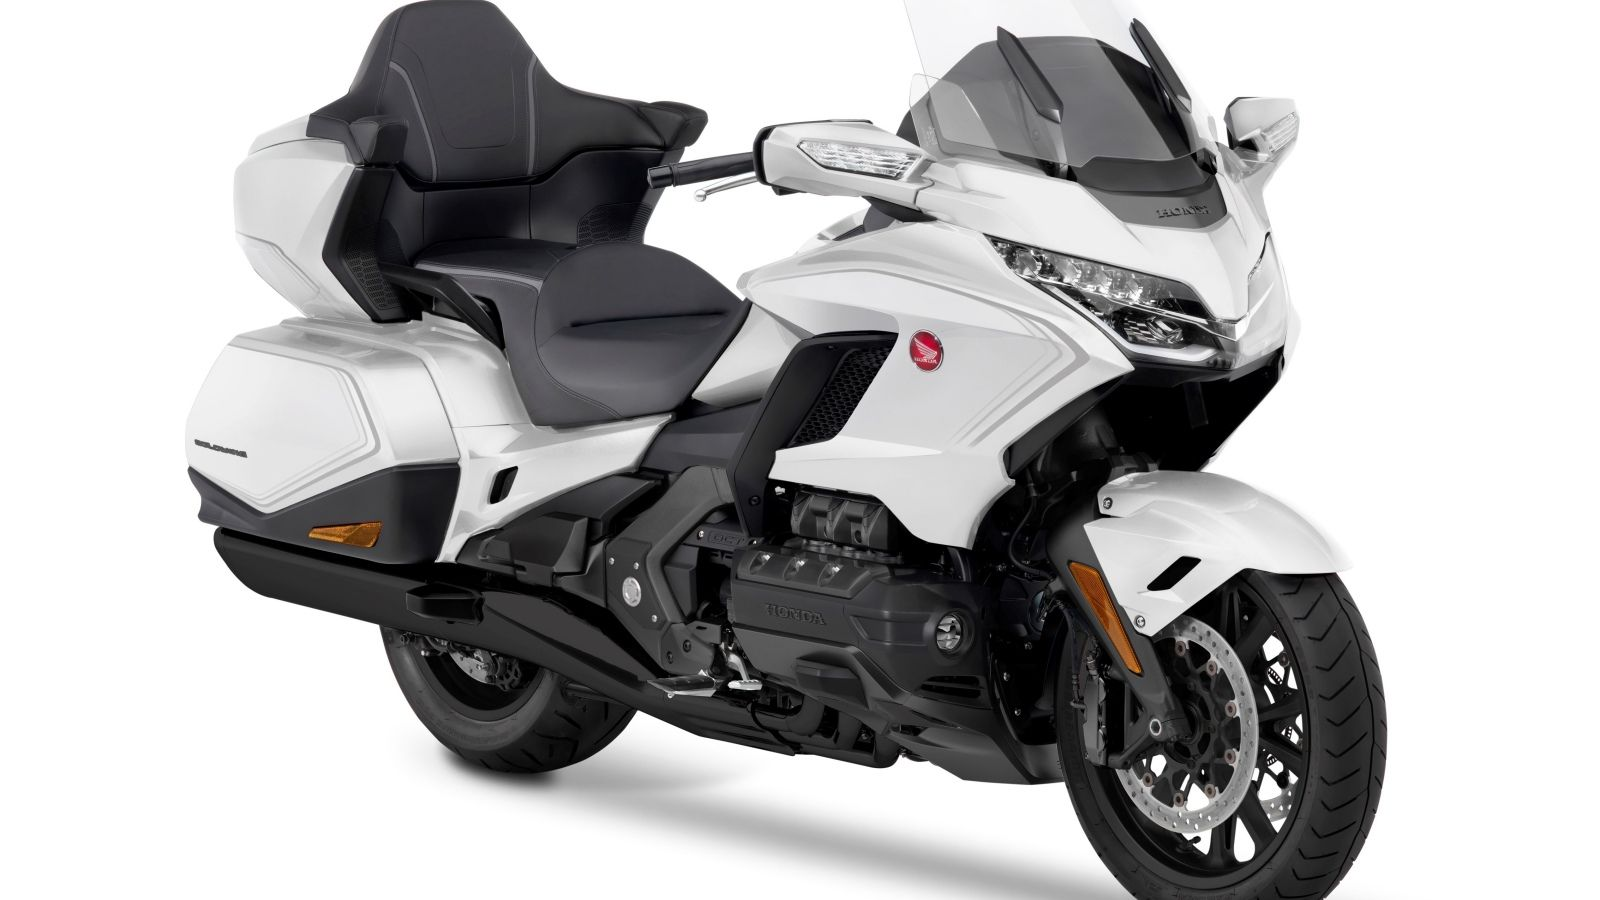 2021 Honda Gold Wing New Review